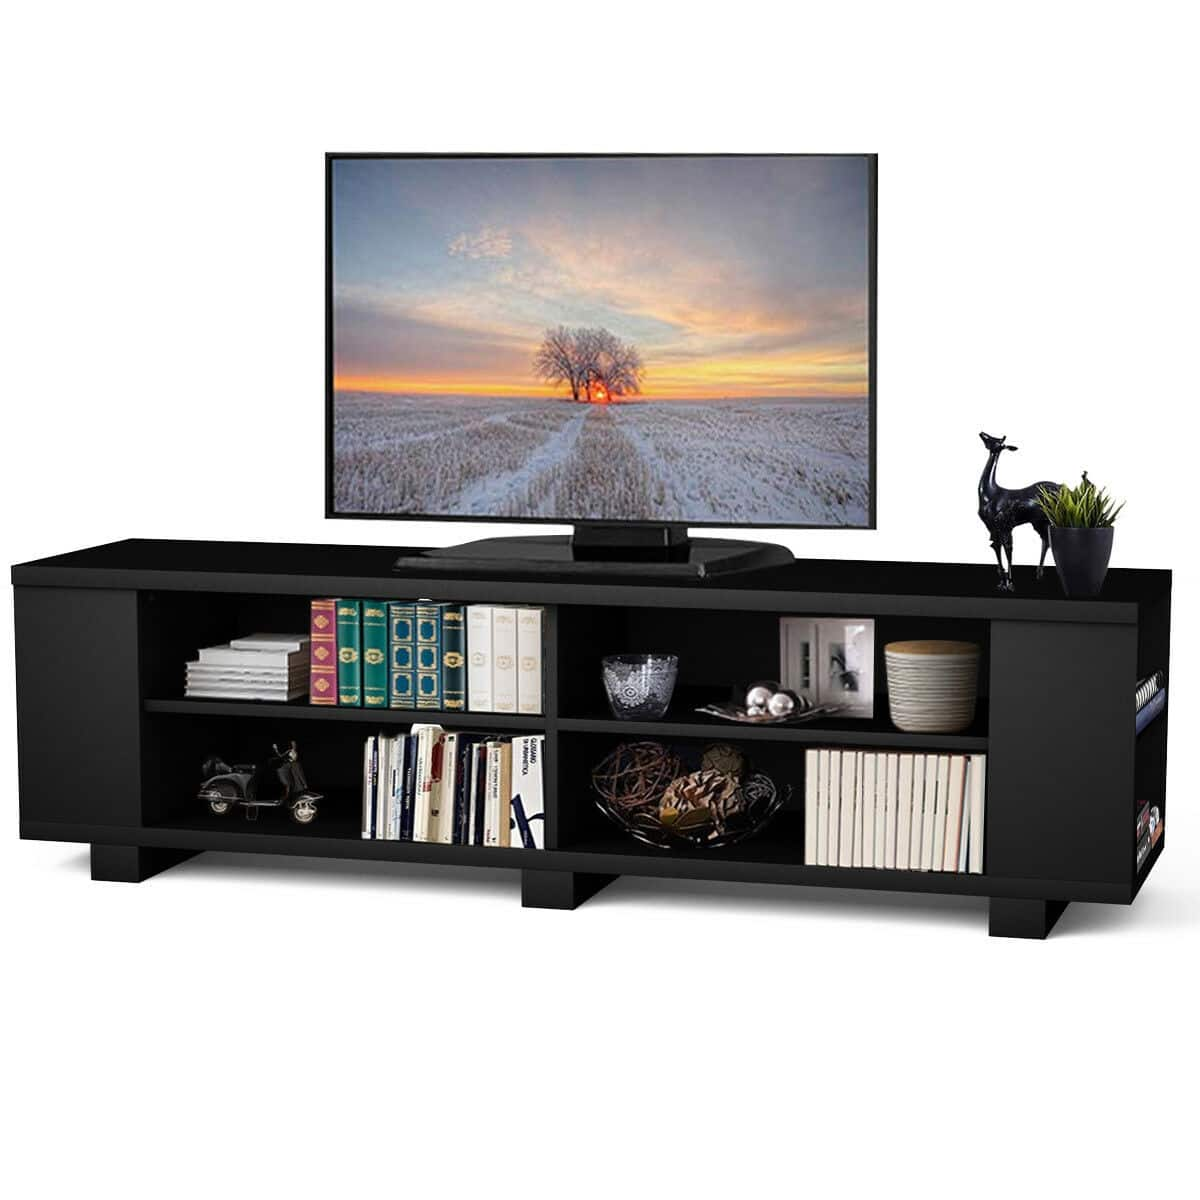 """Costway 59"""" Console Storage Entertainment Media Wood TV Stand-$104.95 + Free Shipping"""